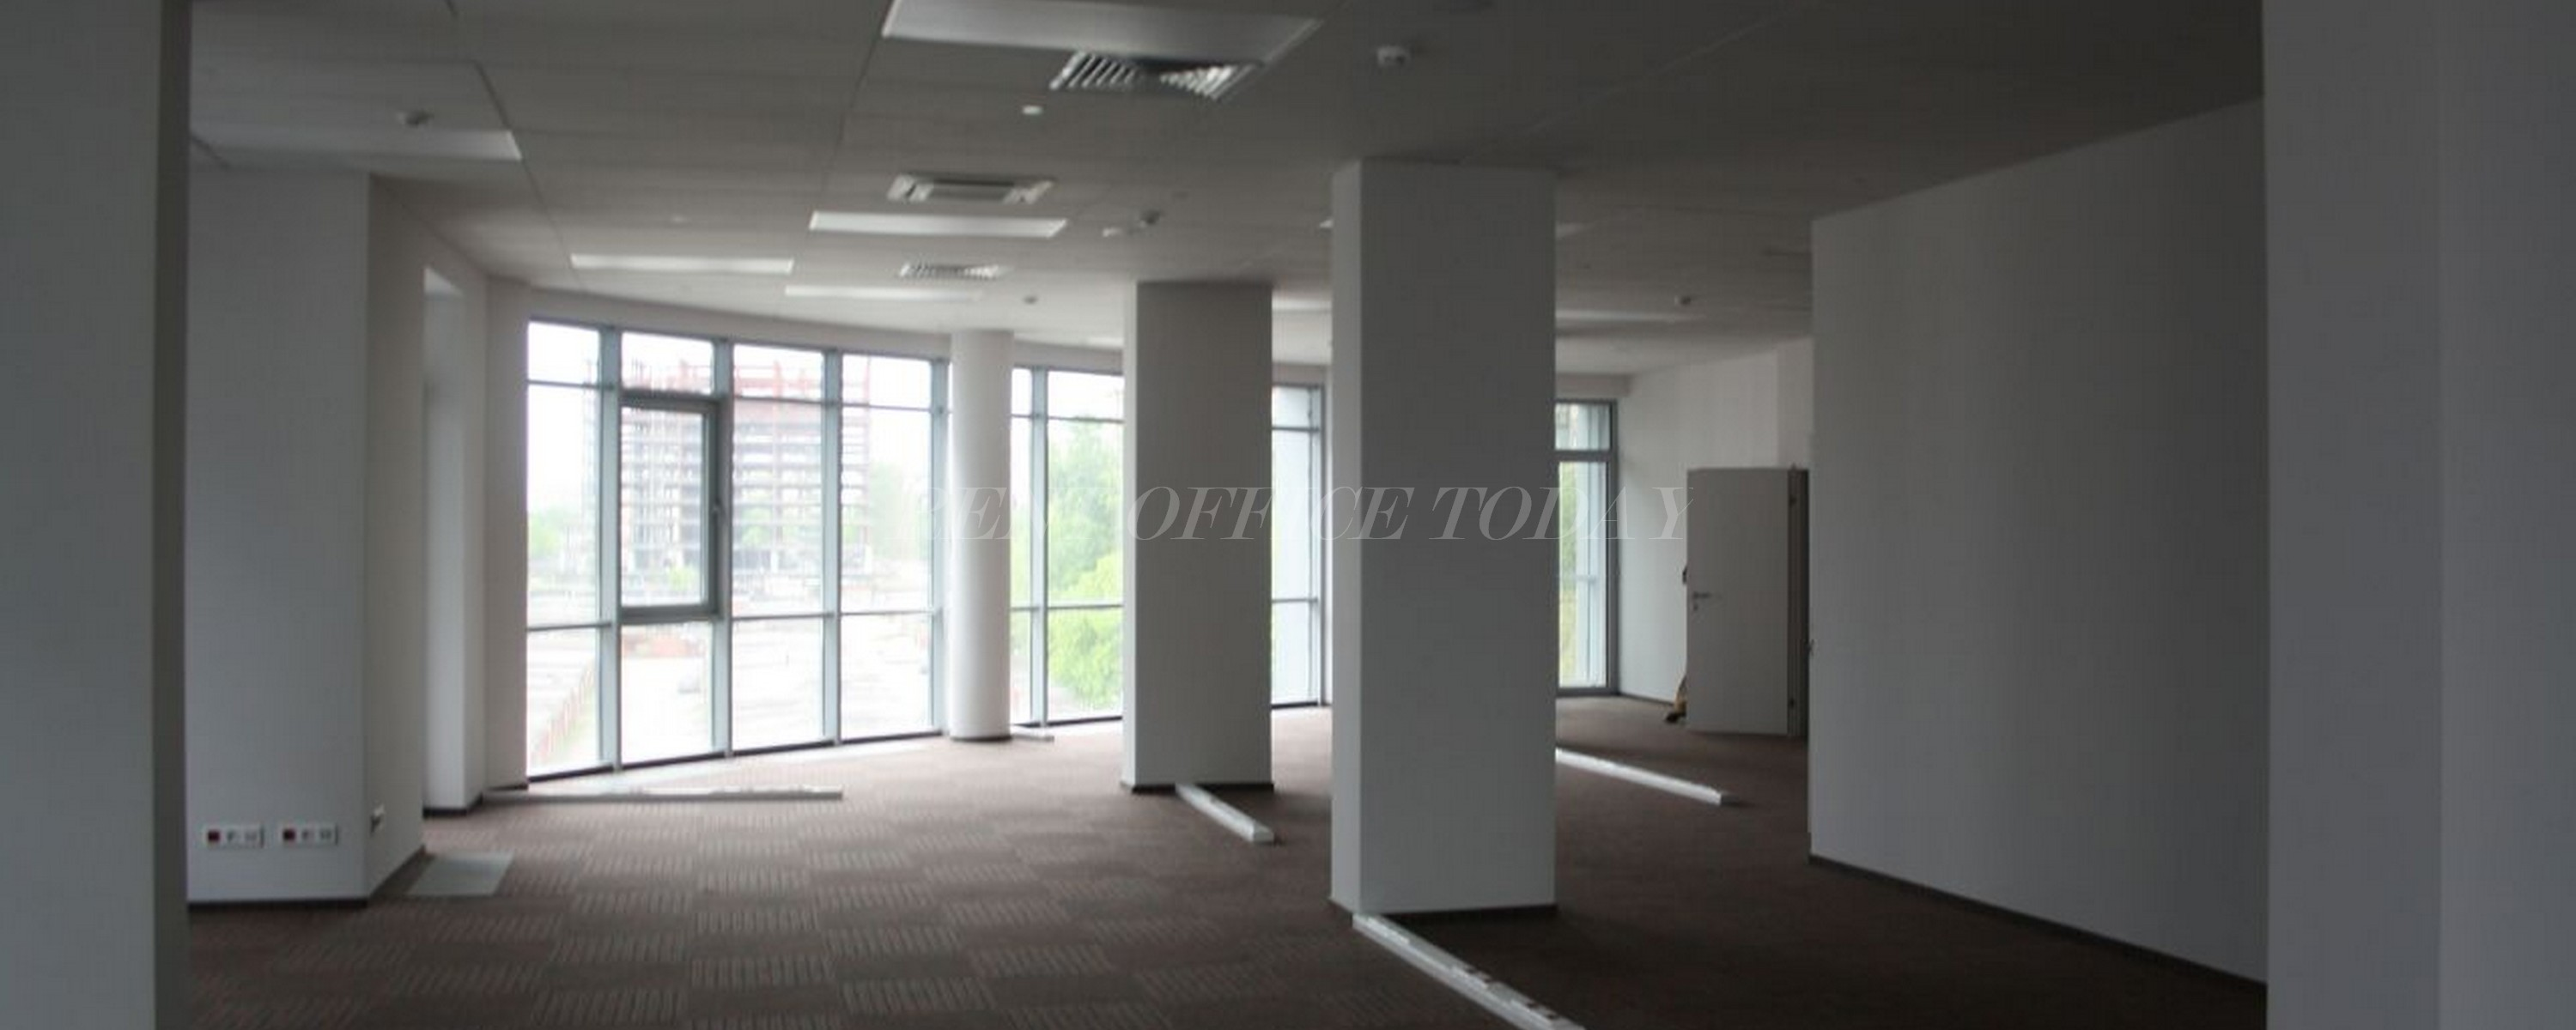 office rent poklonka place-24